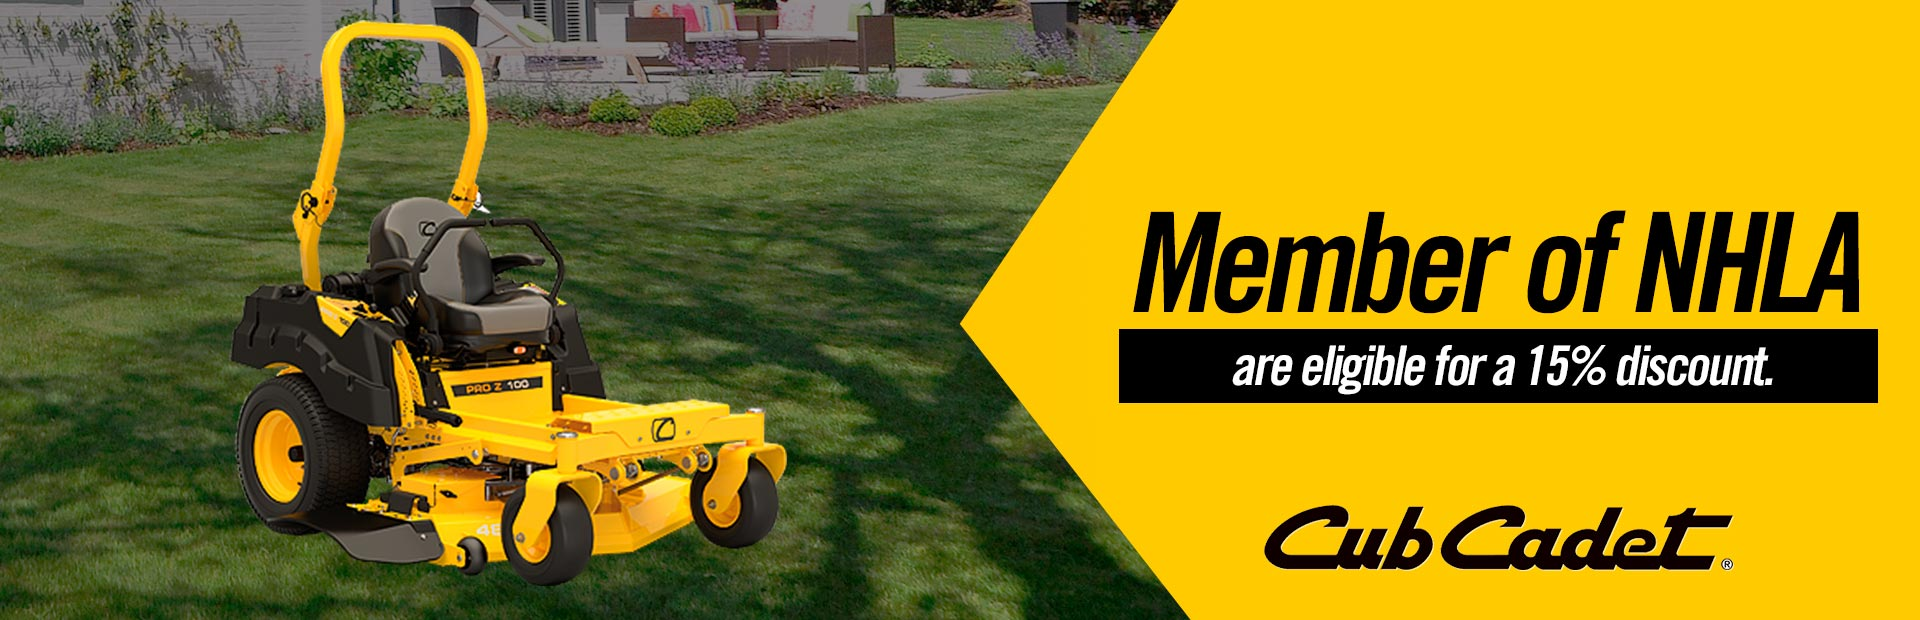 Cub Cadet: Member of NHLA are eligible for a 15% discount.